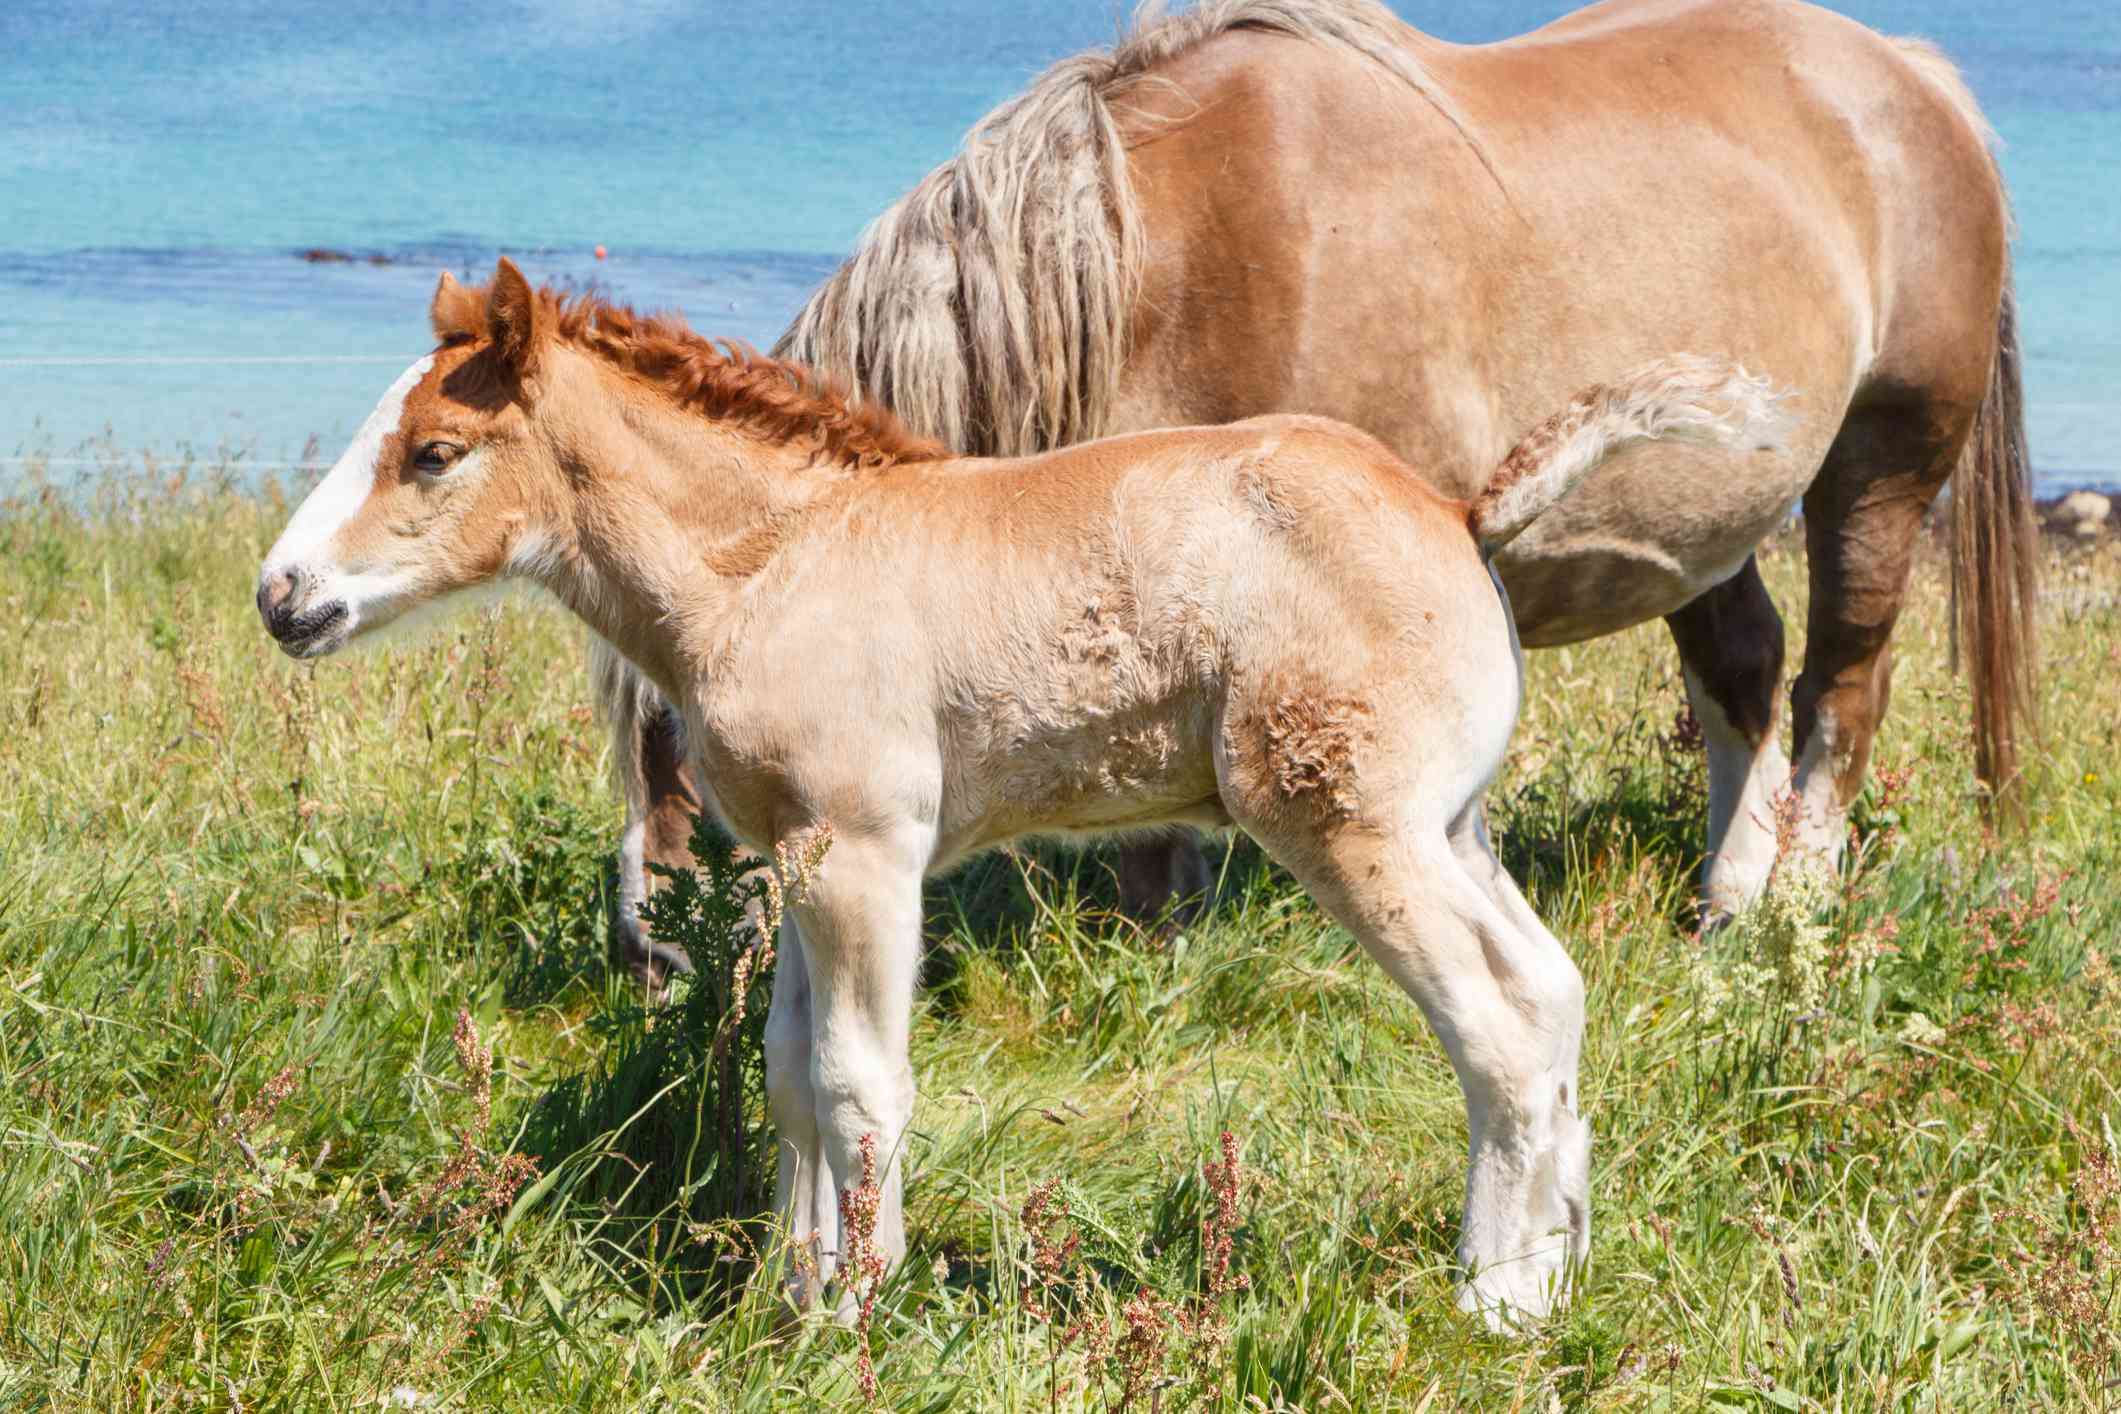 Breton mare and foal grazing in a field in front of the ocean